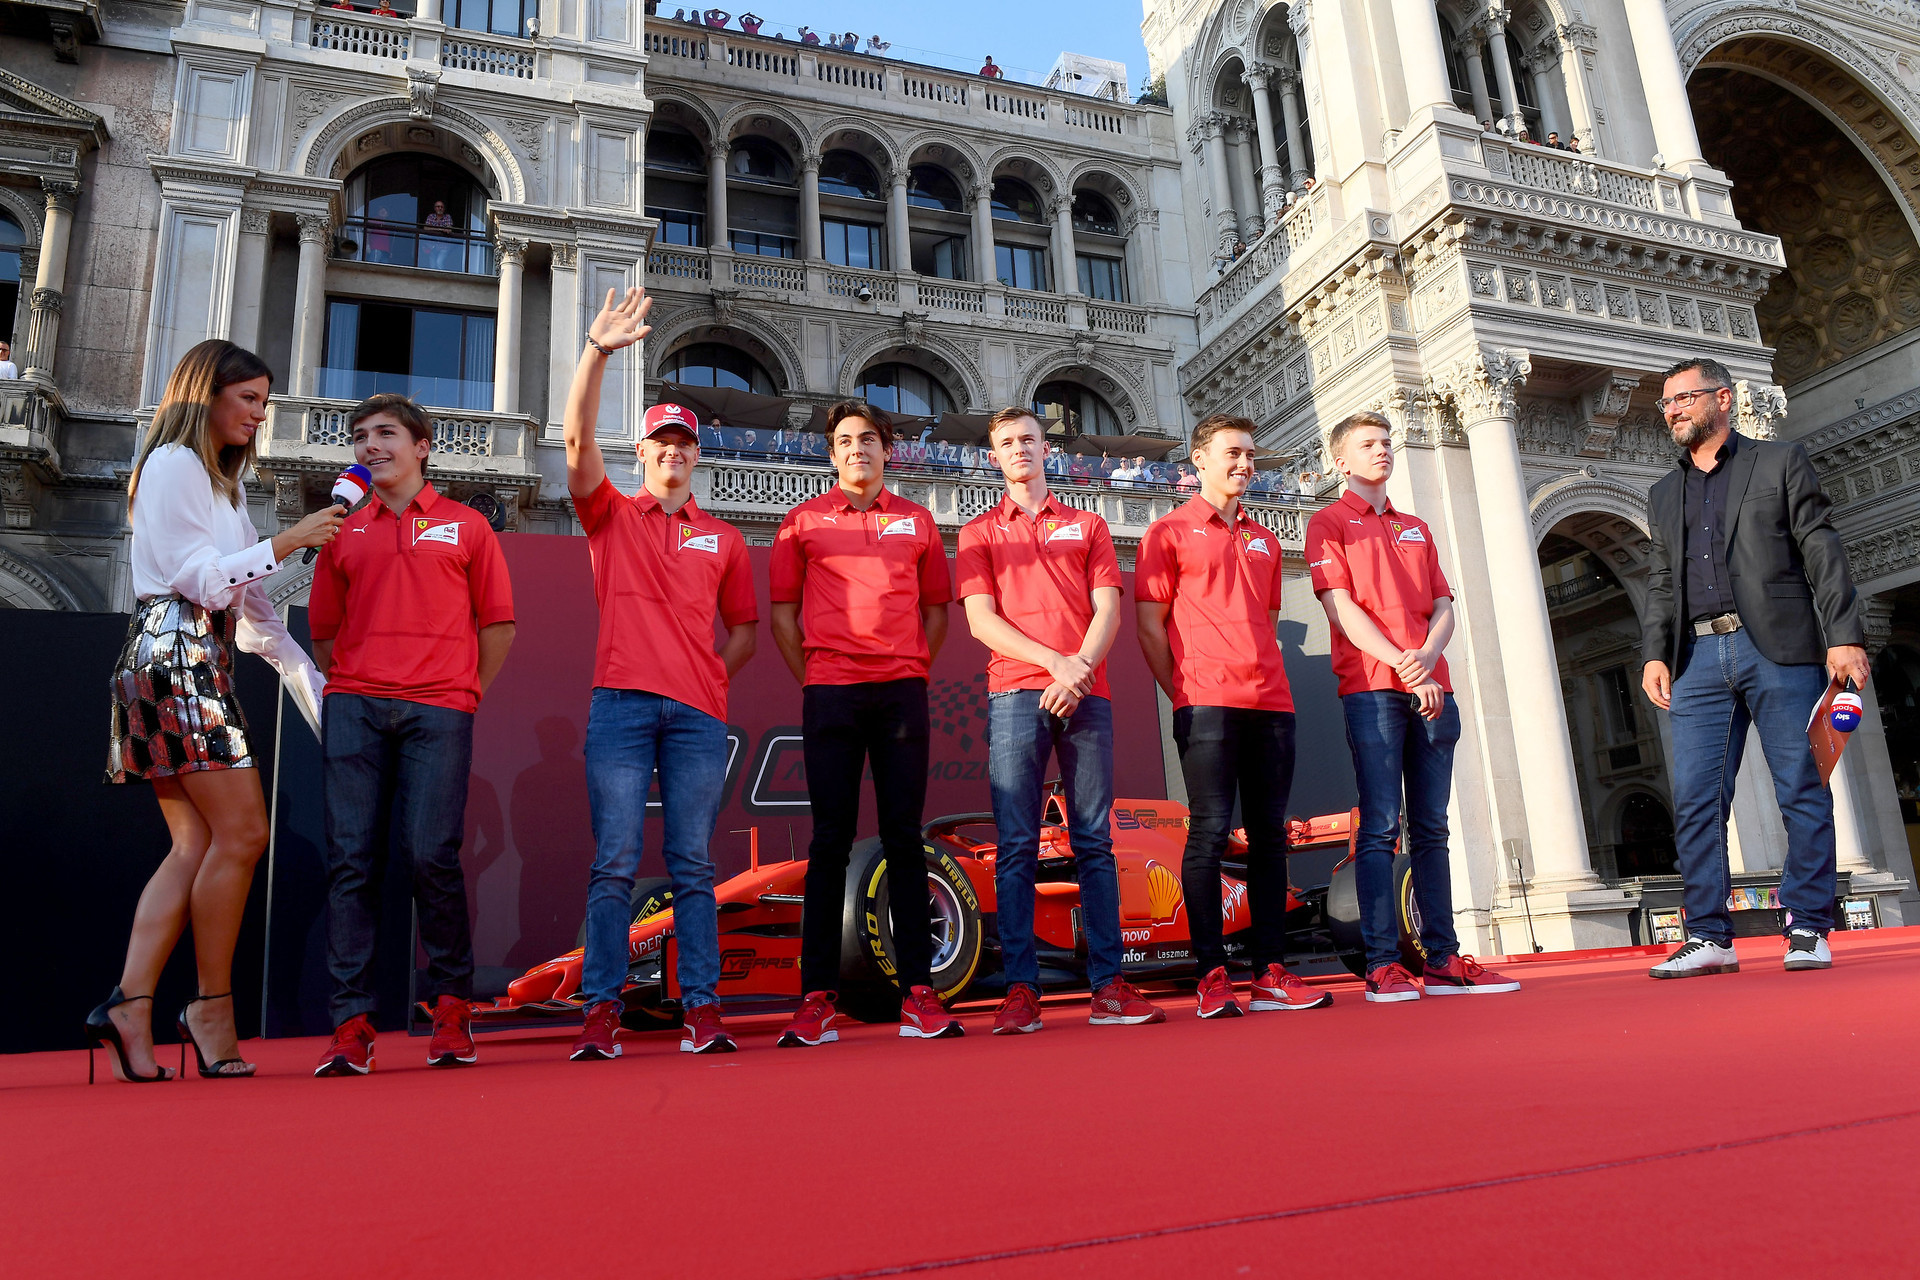 2019 Ferrari 90 Years celebration at Milan | 4 Sept 2019 website 17.jpg